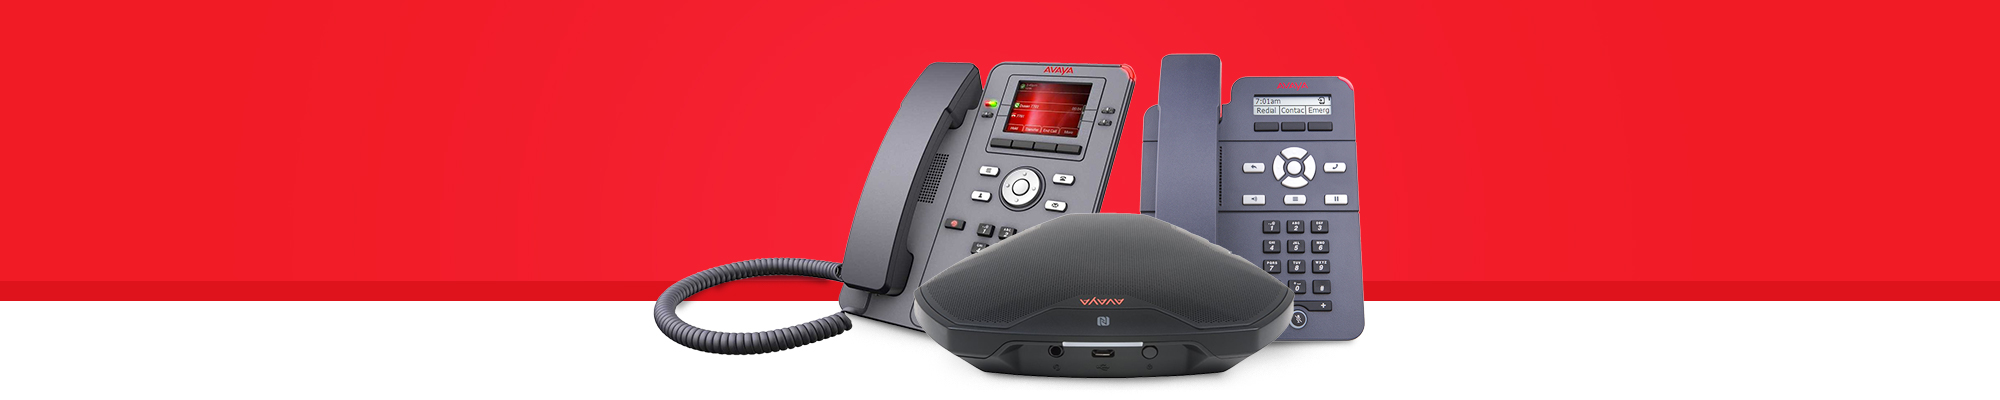 zones Avaya partner